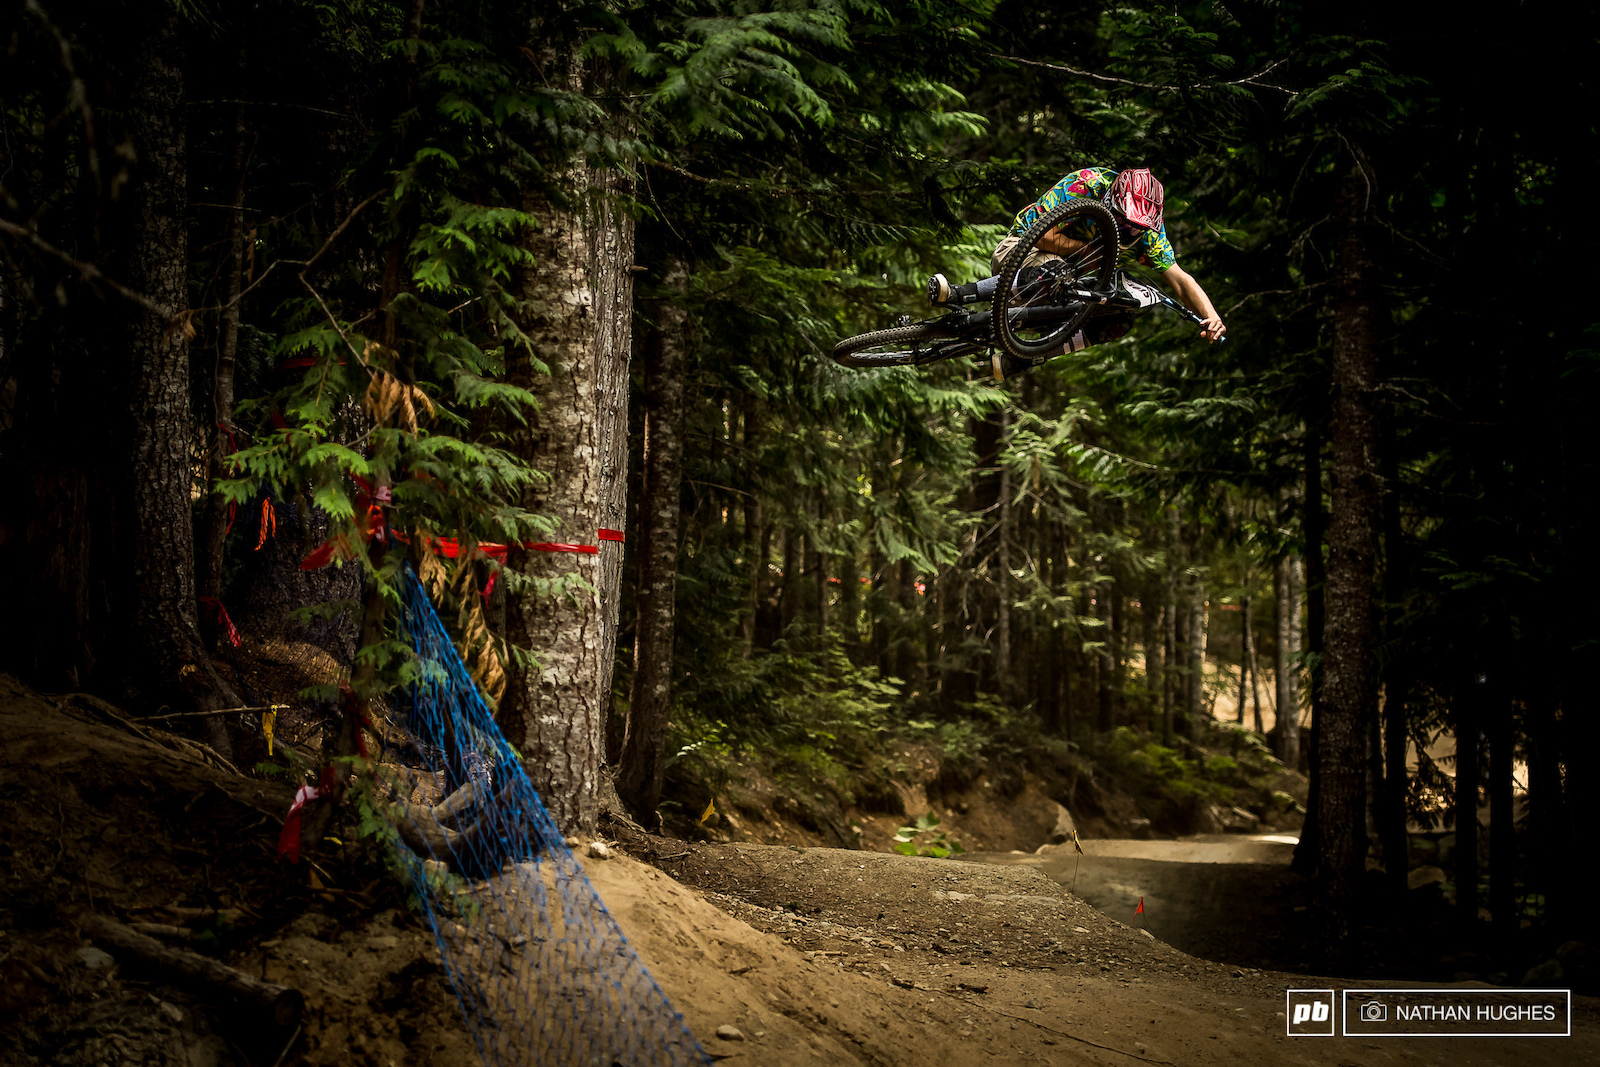 Canadian Youth rider Parker Gibbons showing people twice his age how to ride.